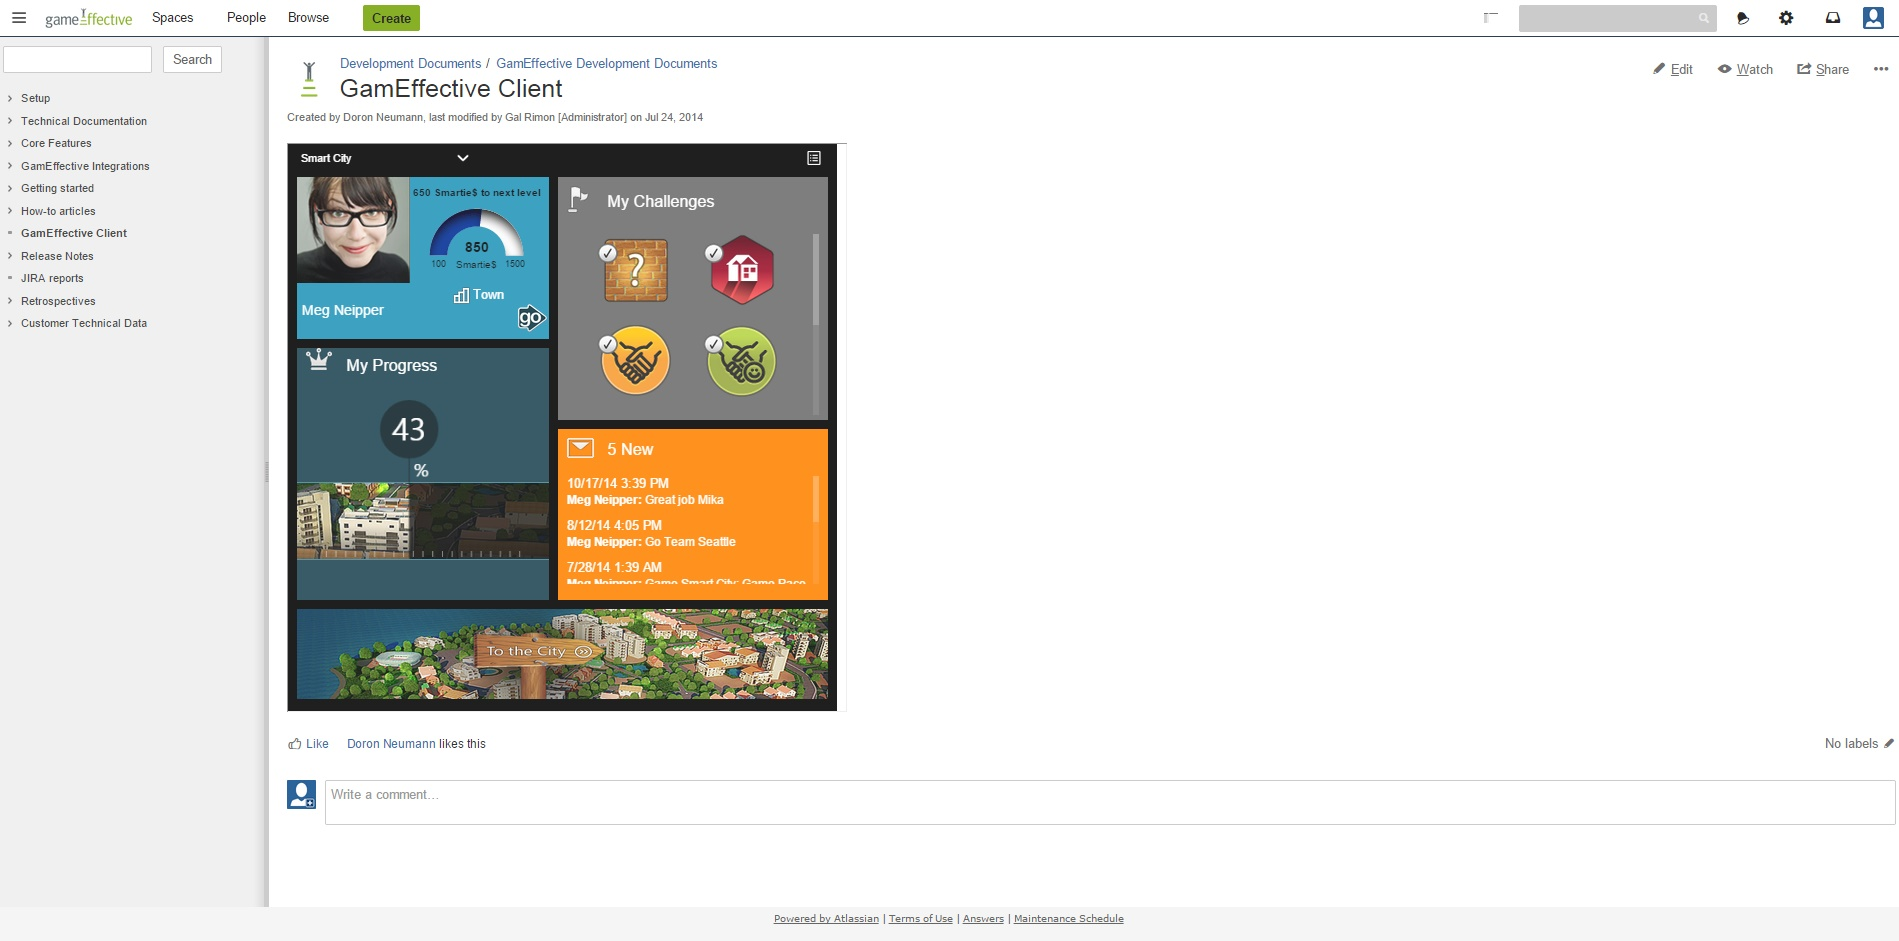 confluence gamification by gameffective